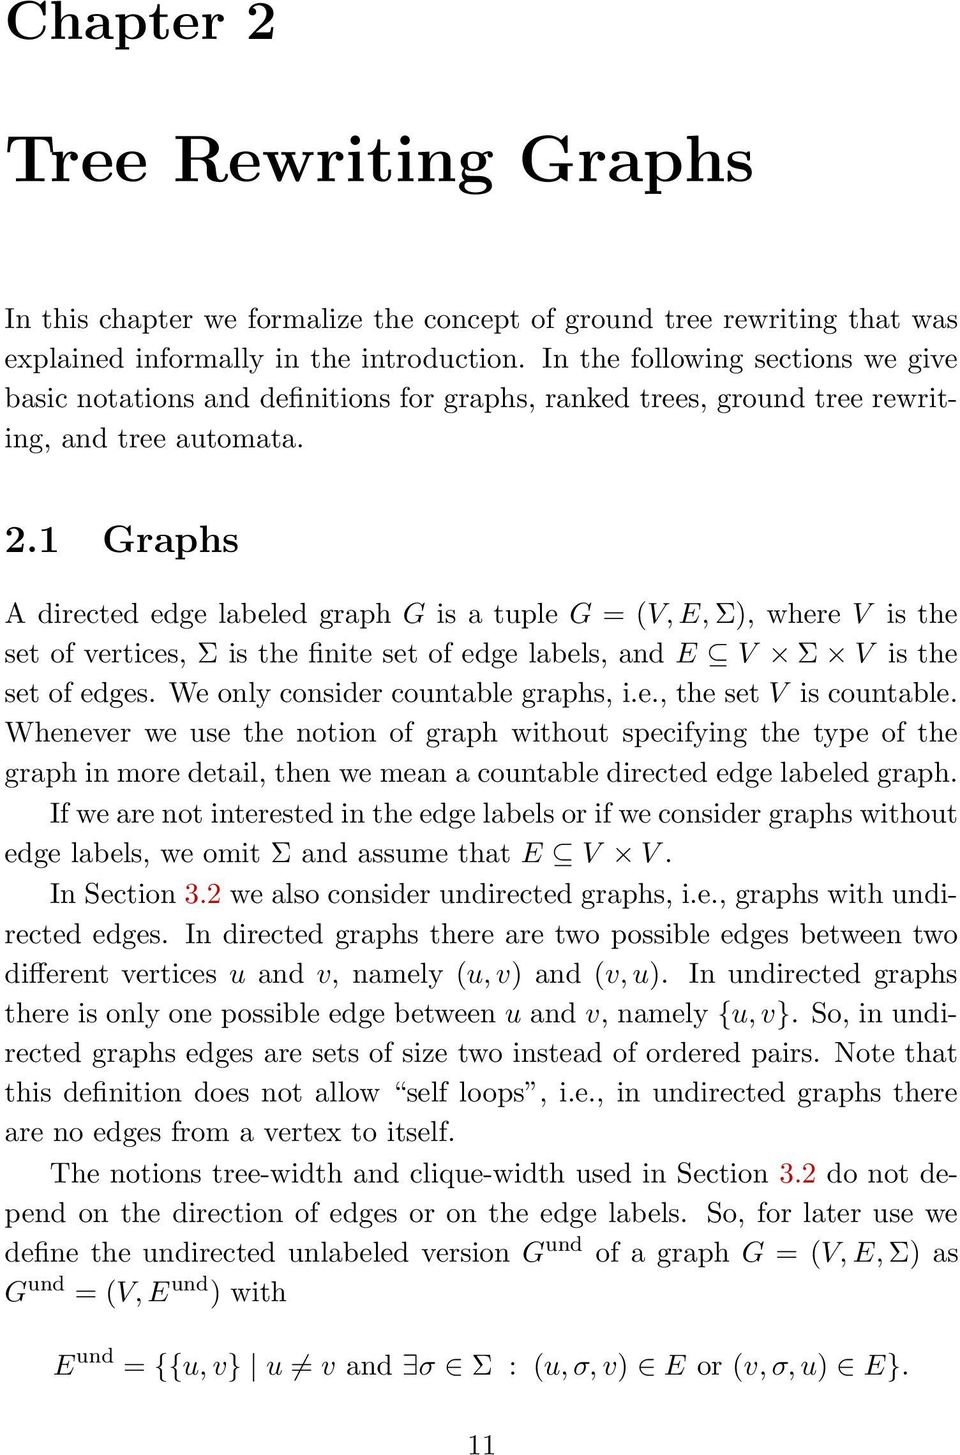 set of edge labels, and E V Σ V is the set of edges We only consider countable graphs, ie, the set V is countable Whenever we use the notion of graph without specifying the type of the graph in more